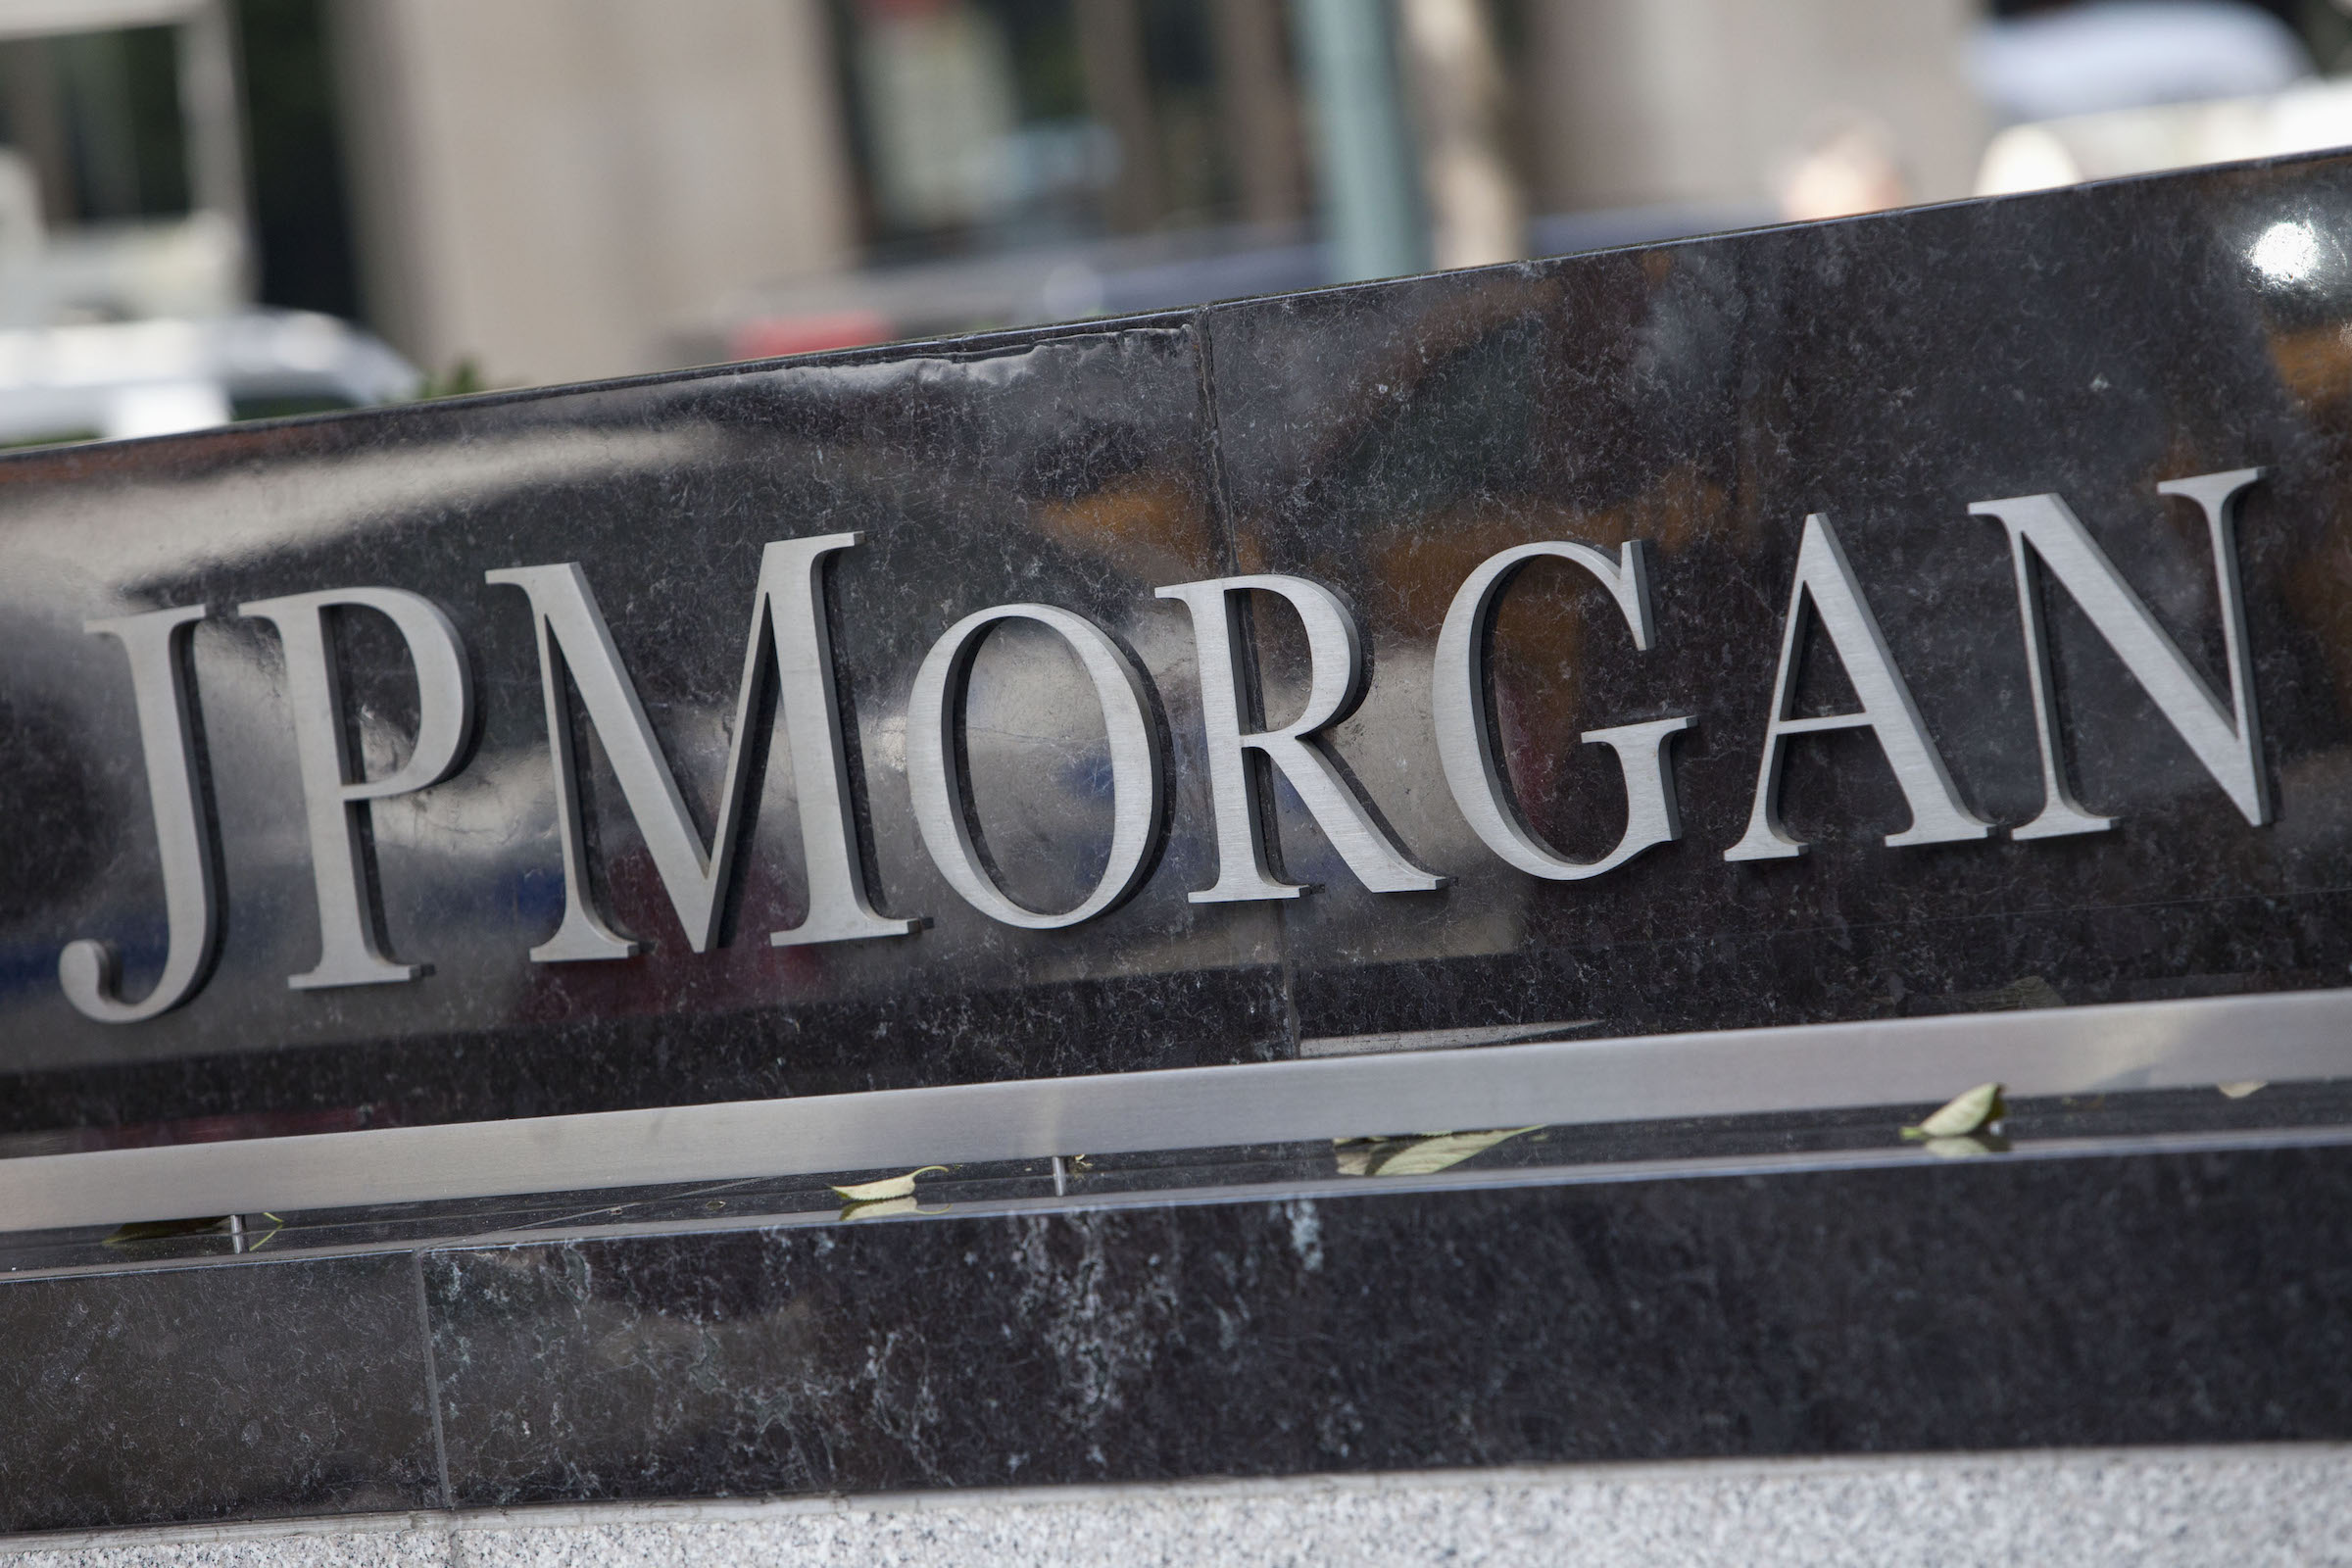 JPMorgan just scored a big win over Silicon Valley in its new ...